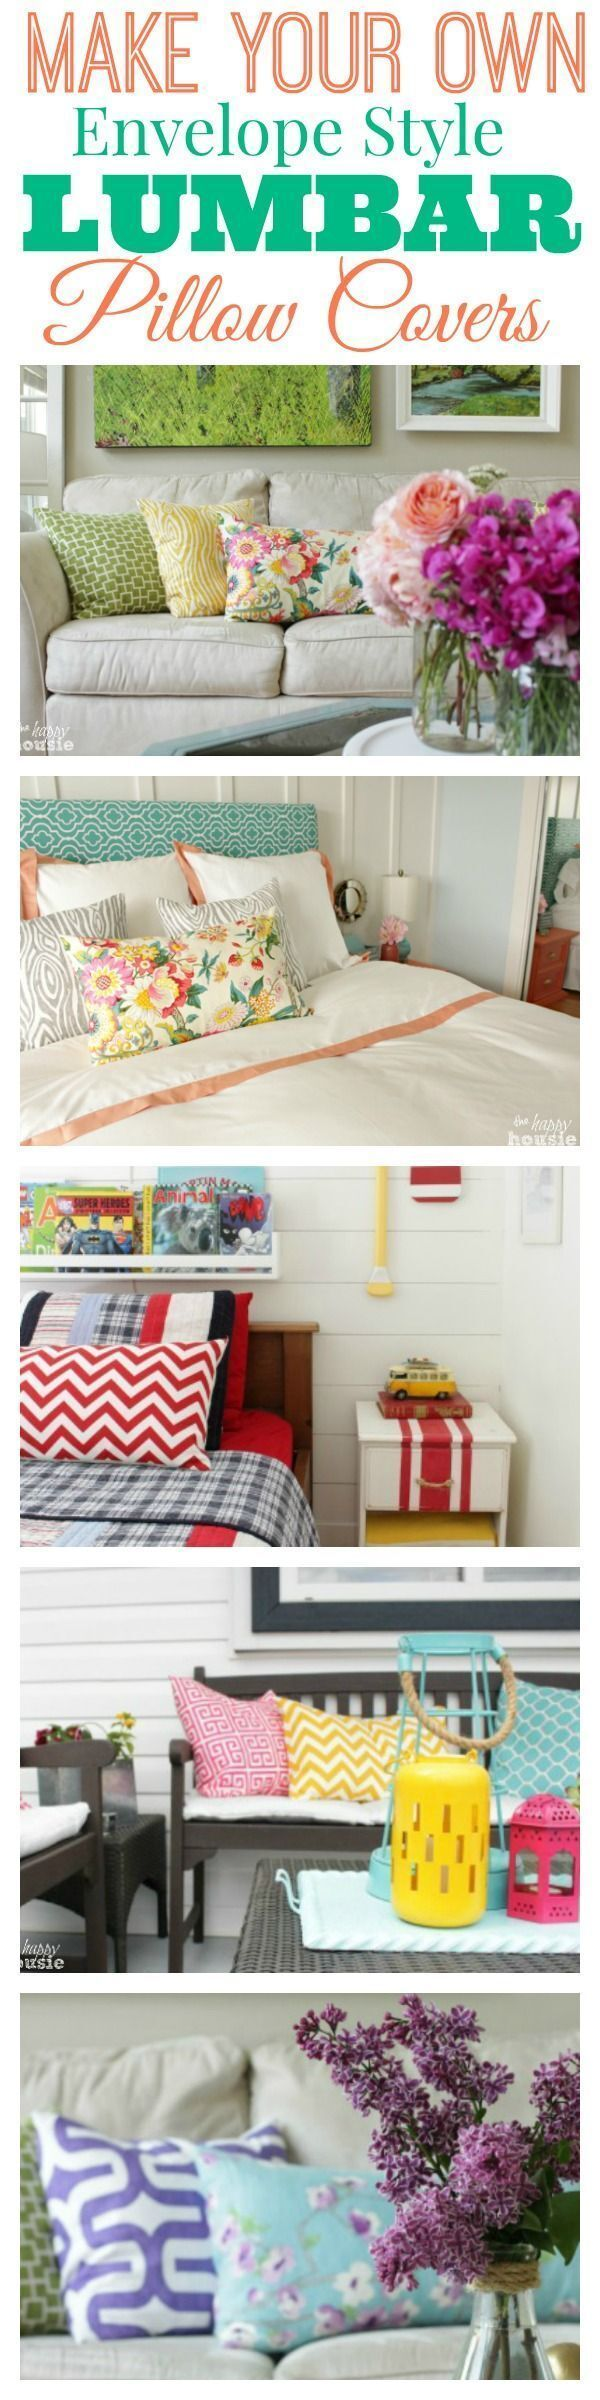 How to Make DIY Envelope Style Lumbar Pillow Covers {the STARS of the show